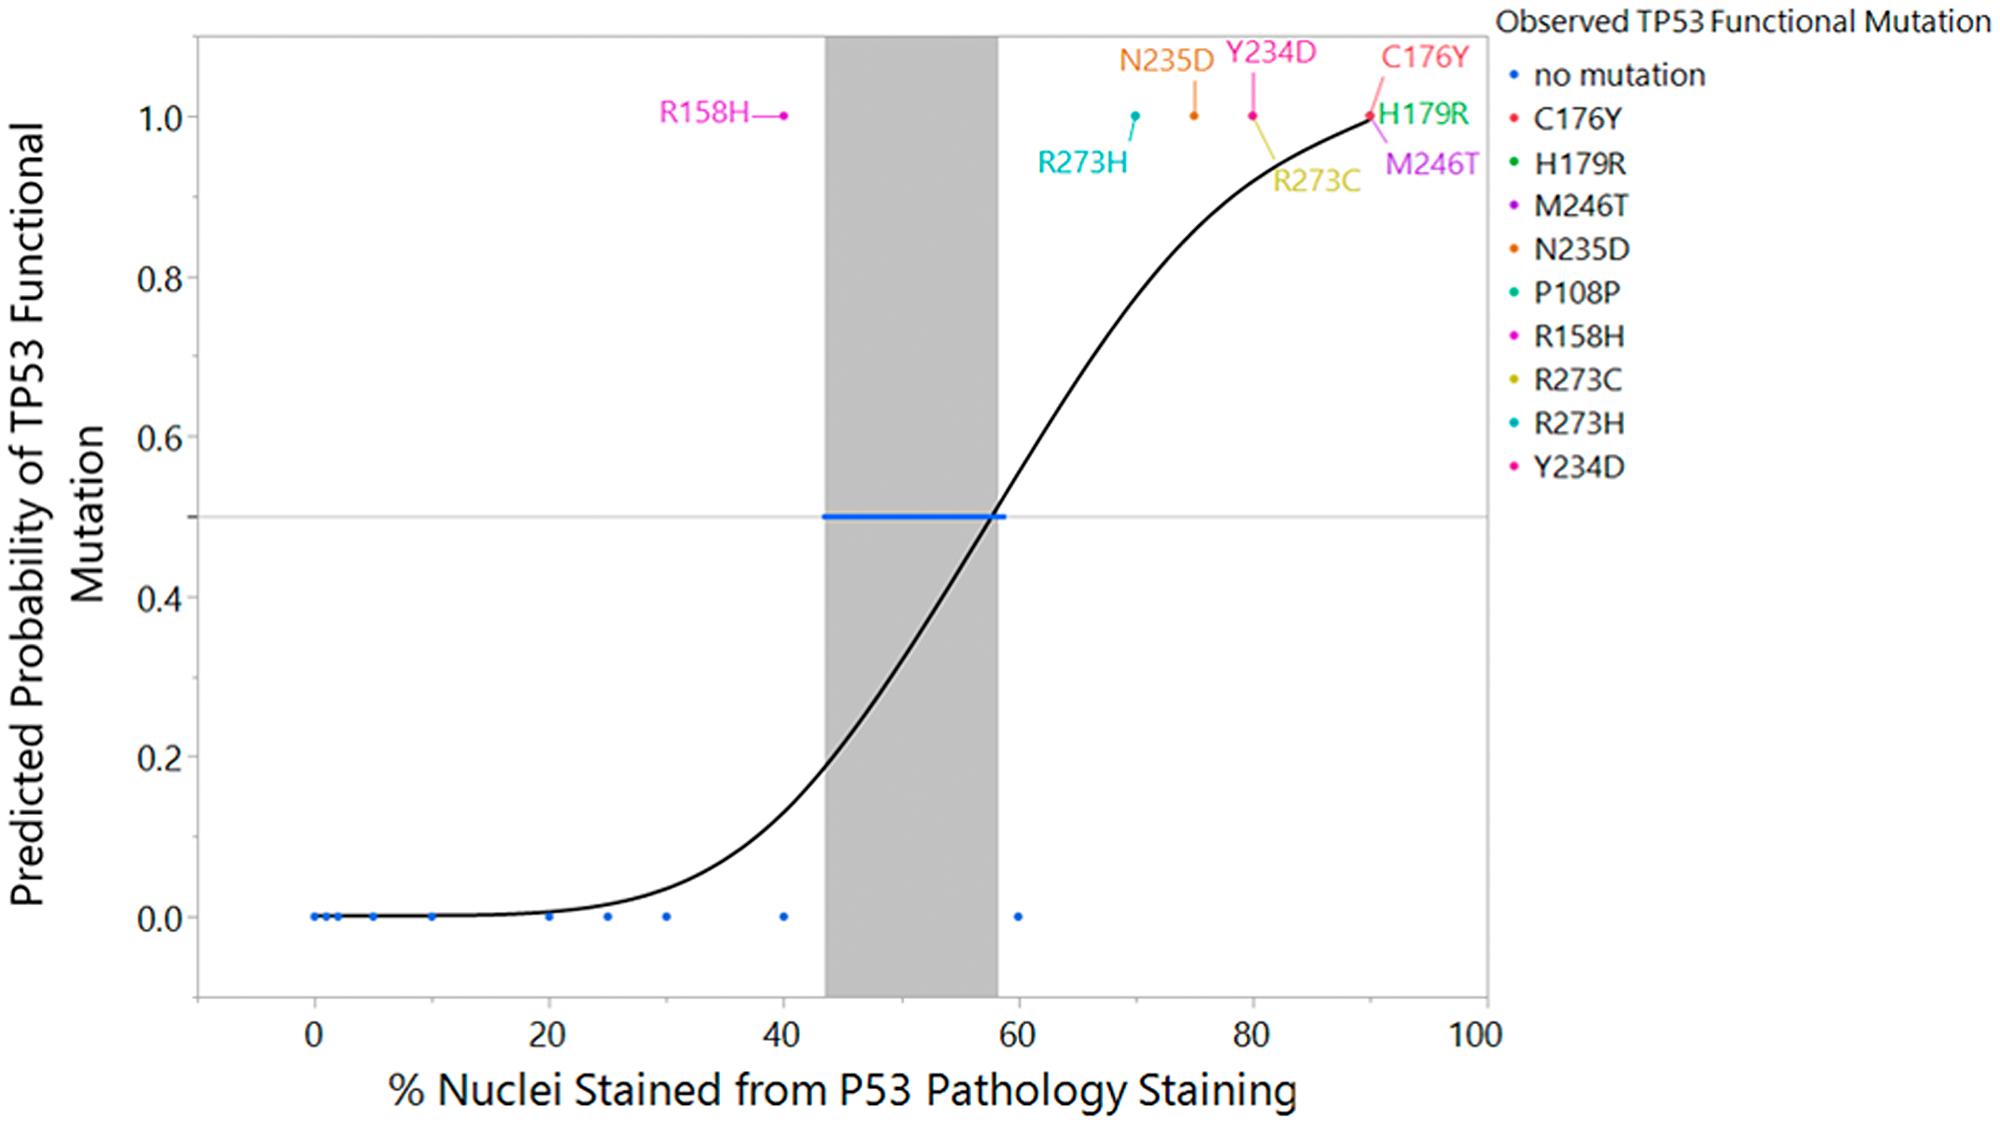 Logistic regression fit of TP53 sequencing result versus p53 IHC % staining with inverse prediction interval and mutation label.